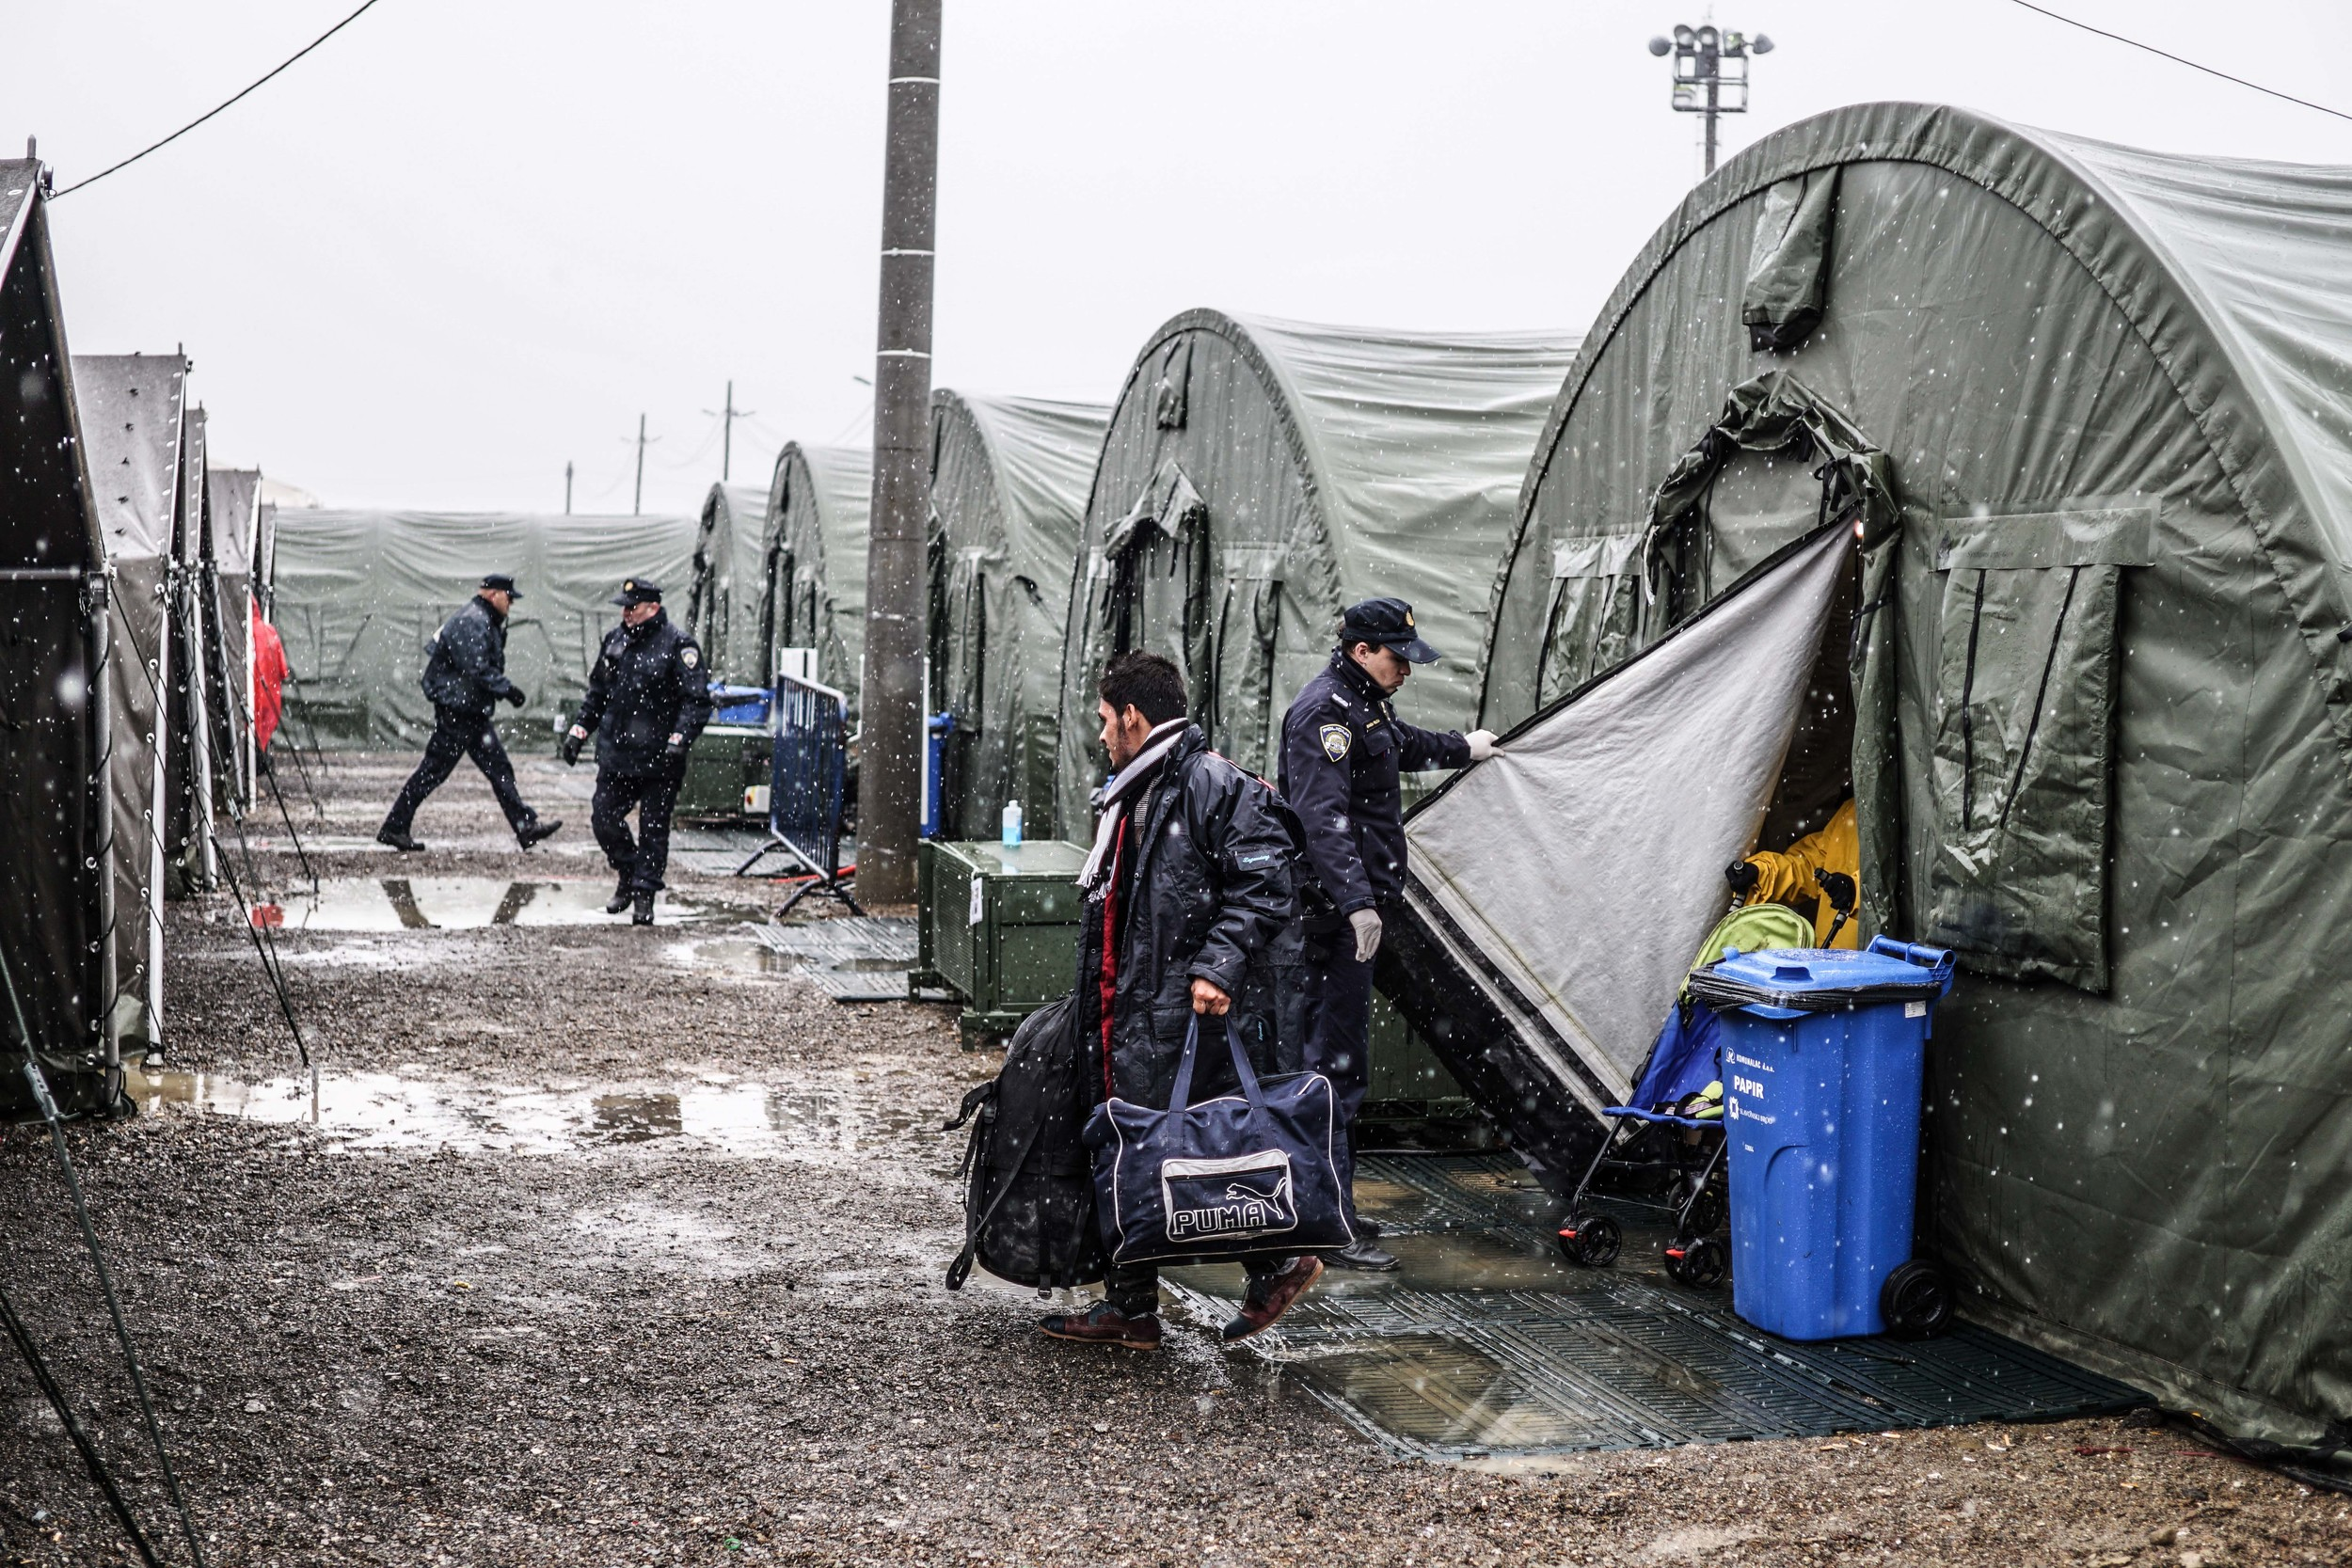 Syrian Refugee Crisis Croatia Slavonski Brod Winter Refugee Camp November 2015 29.jpg